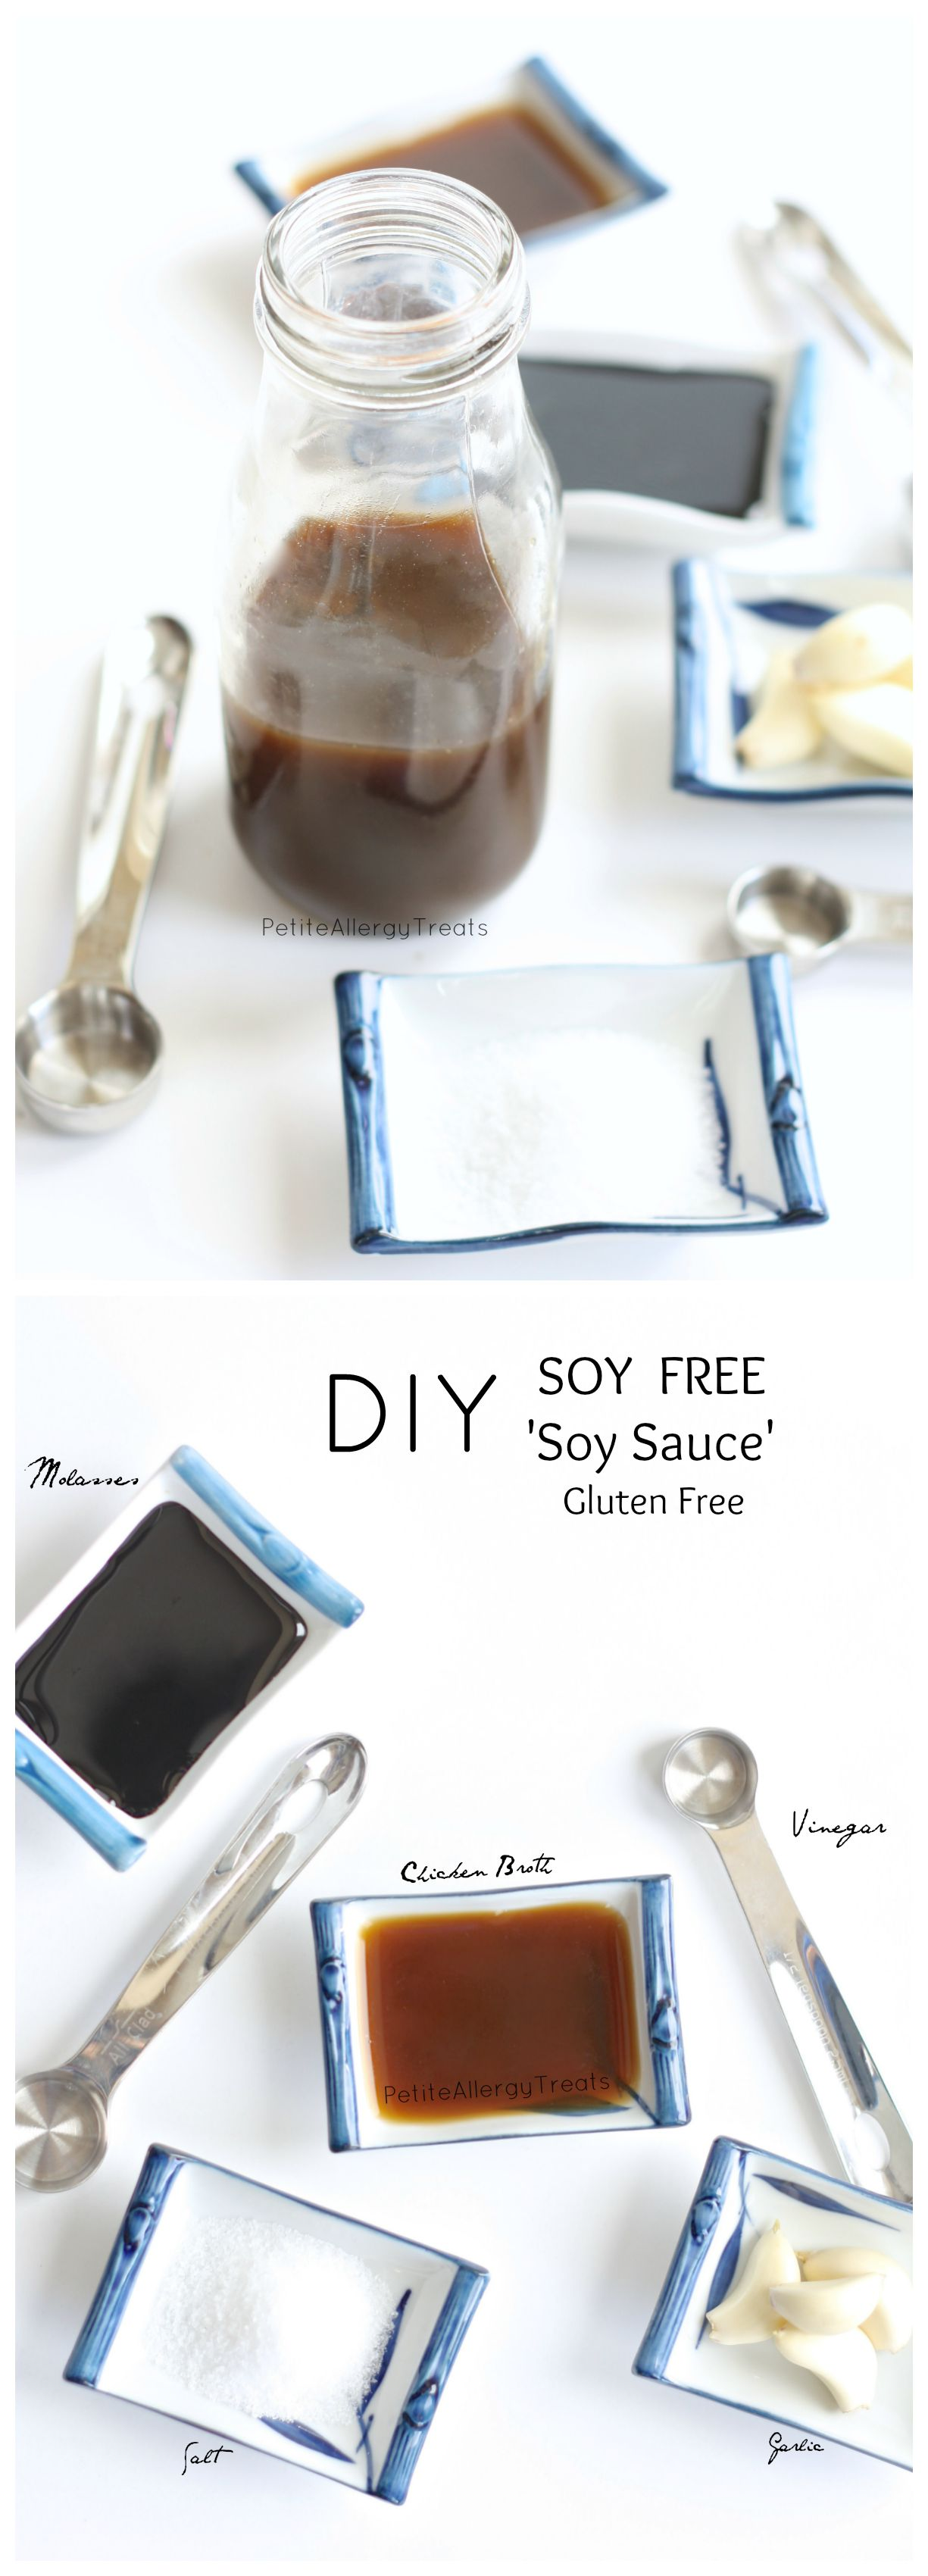 Homemade Soy Free 'Soy Sauce' (Gluten Free) Make your soy-free sauce with less sodium but all the flavor.  Perfect for those with soy and wheat allergies